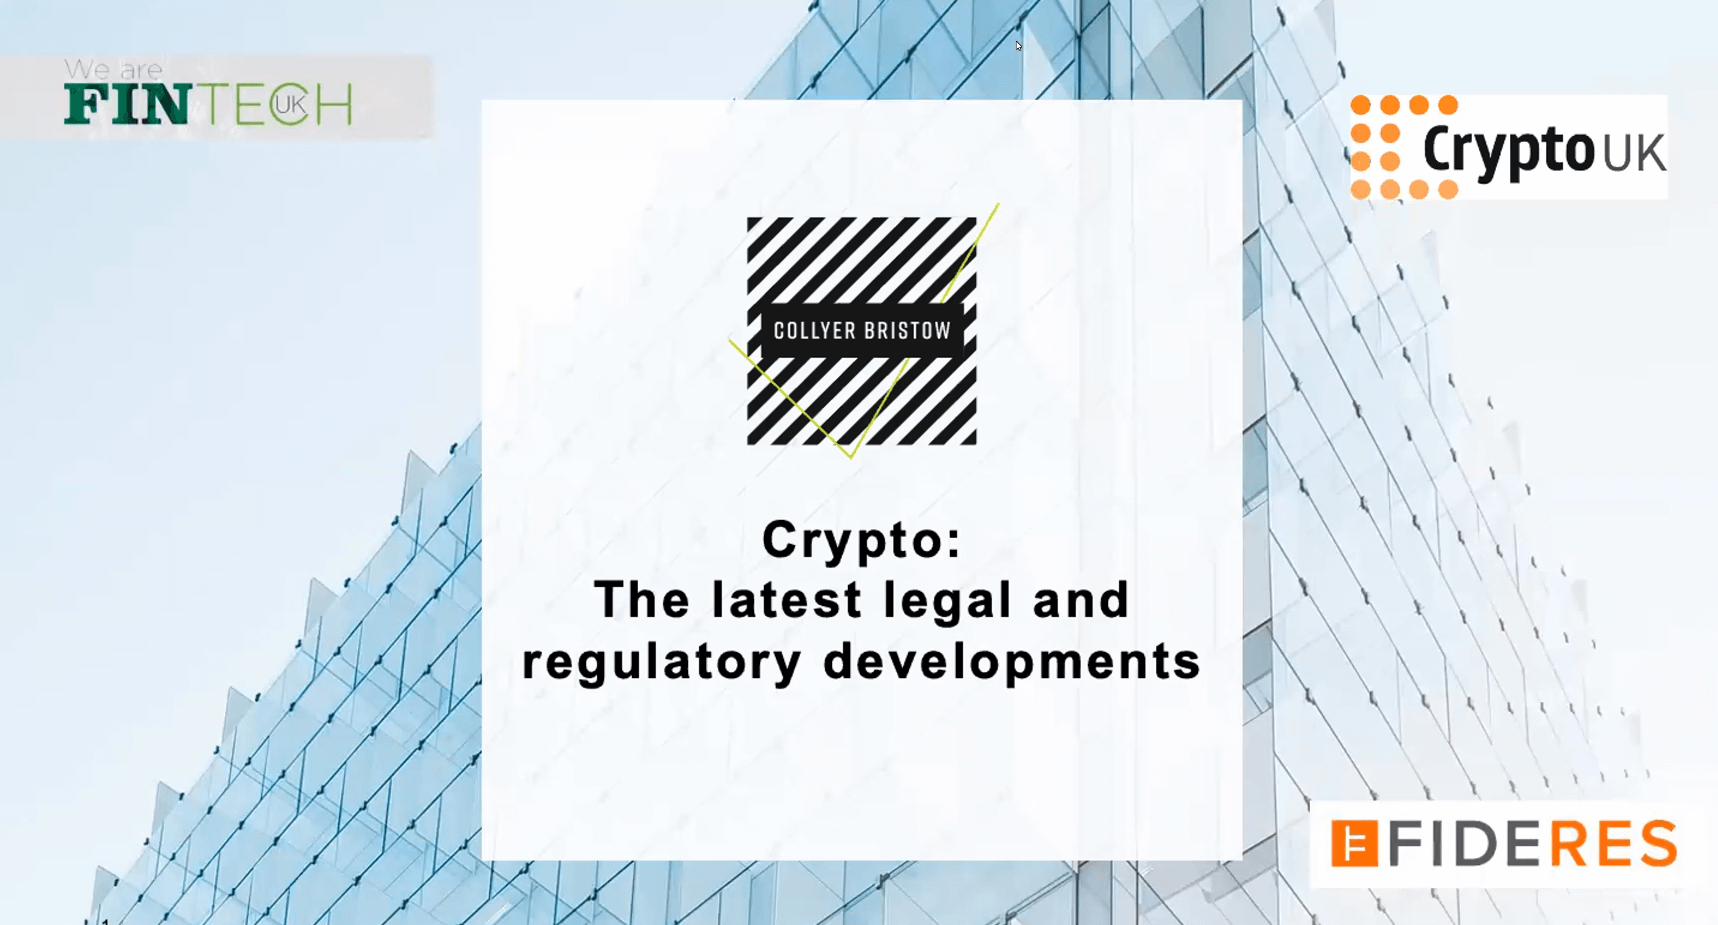 A webinar update on the latest legal and regulatory changes in crypto